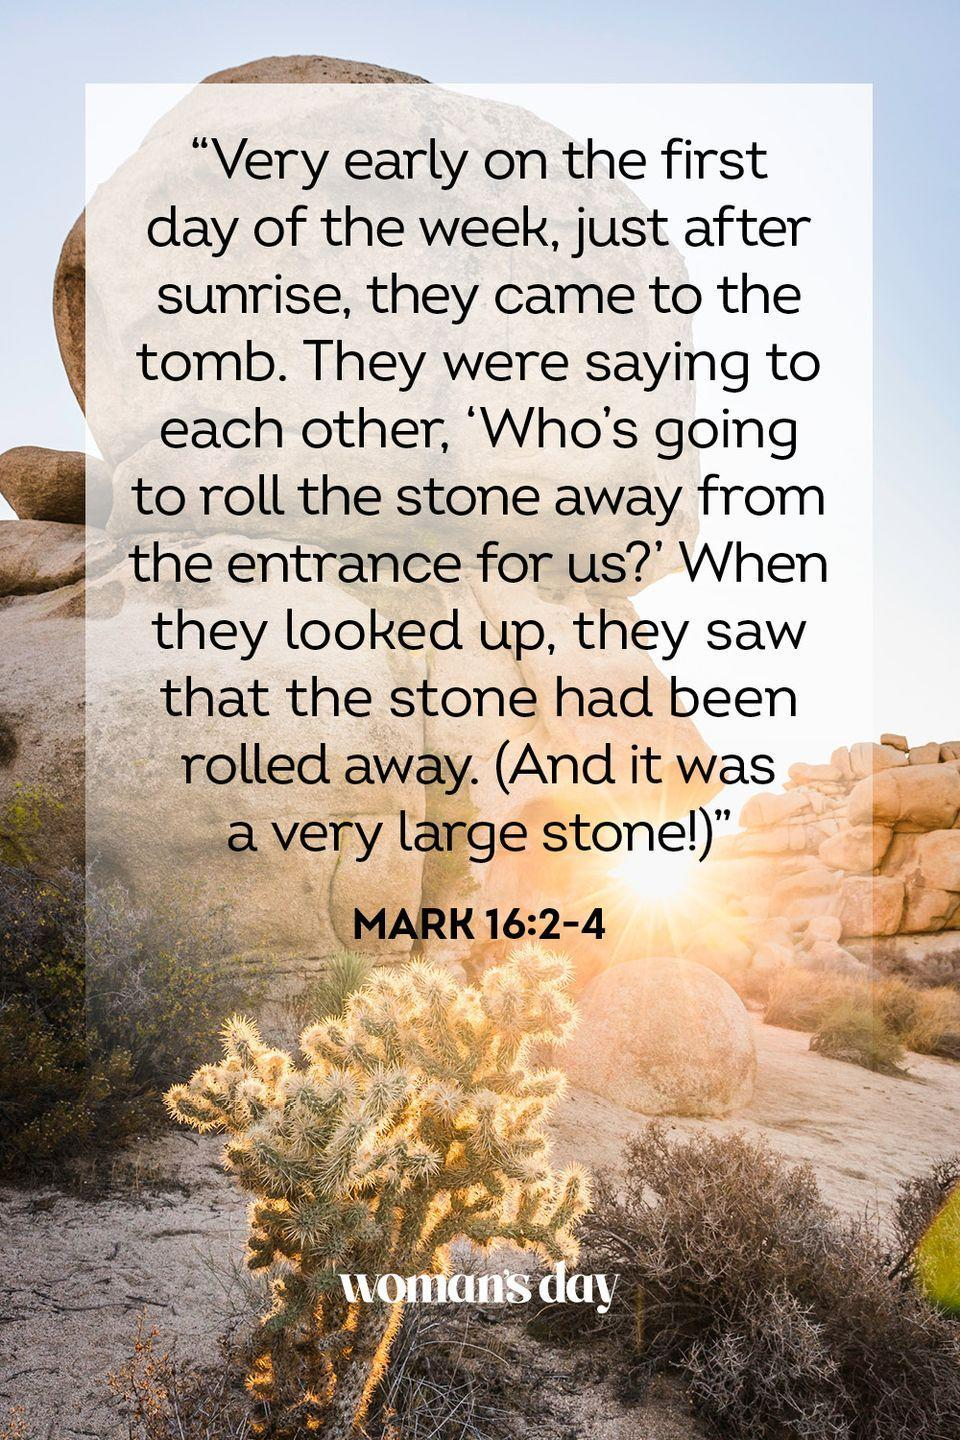 "<p>""Very early on the first day of the week, just after sunrise, they came to the tomb. They were saying to each other, 'Who's going to roll the stone away from the entrance for us?' When they looked up, they saw that the stone had been rolled away. (And it was a very large stone!)"" — Mark 16:2-4</p>"